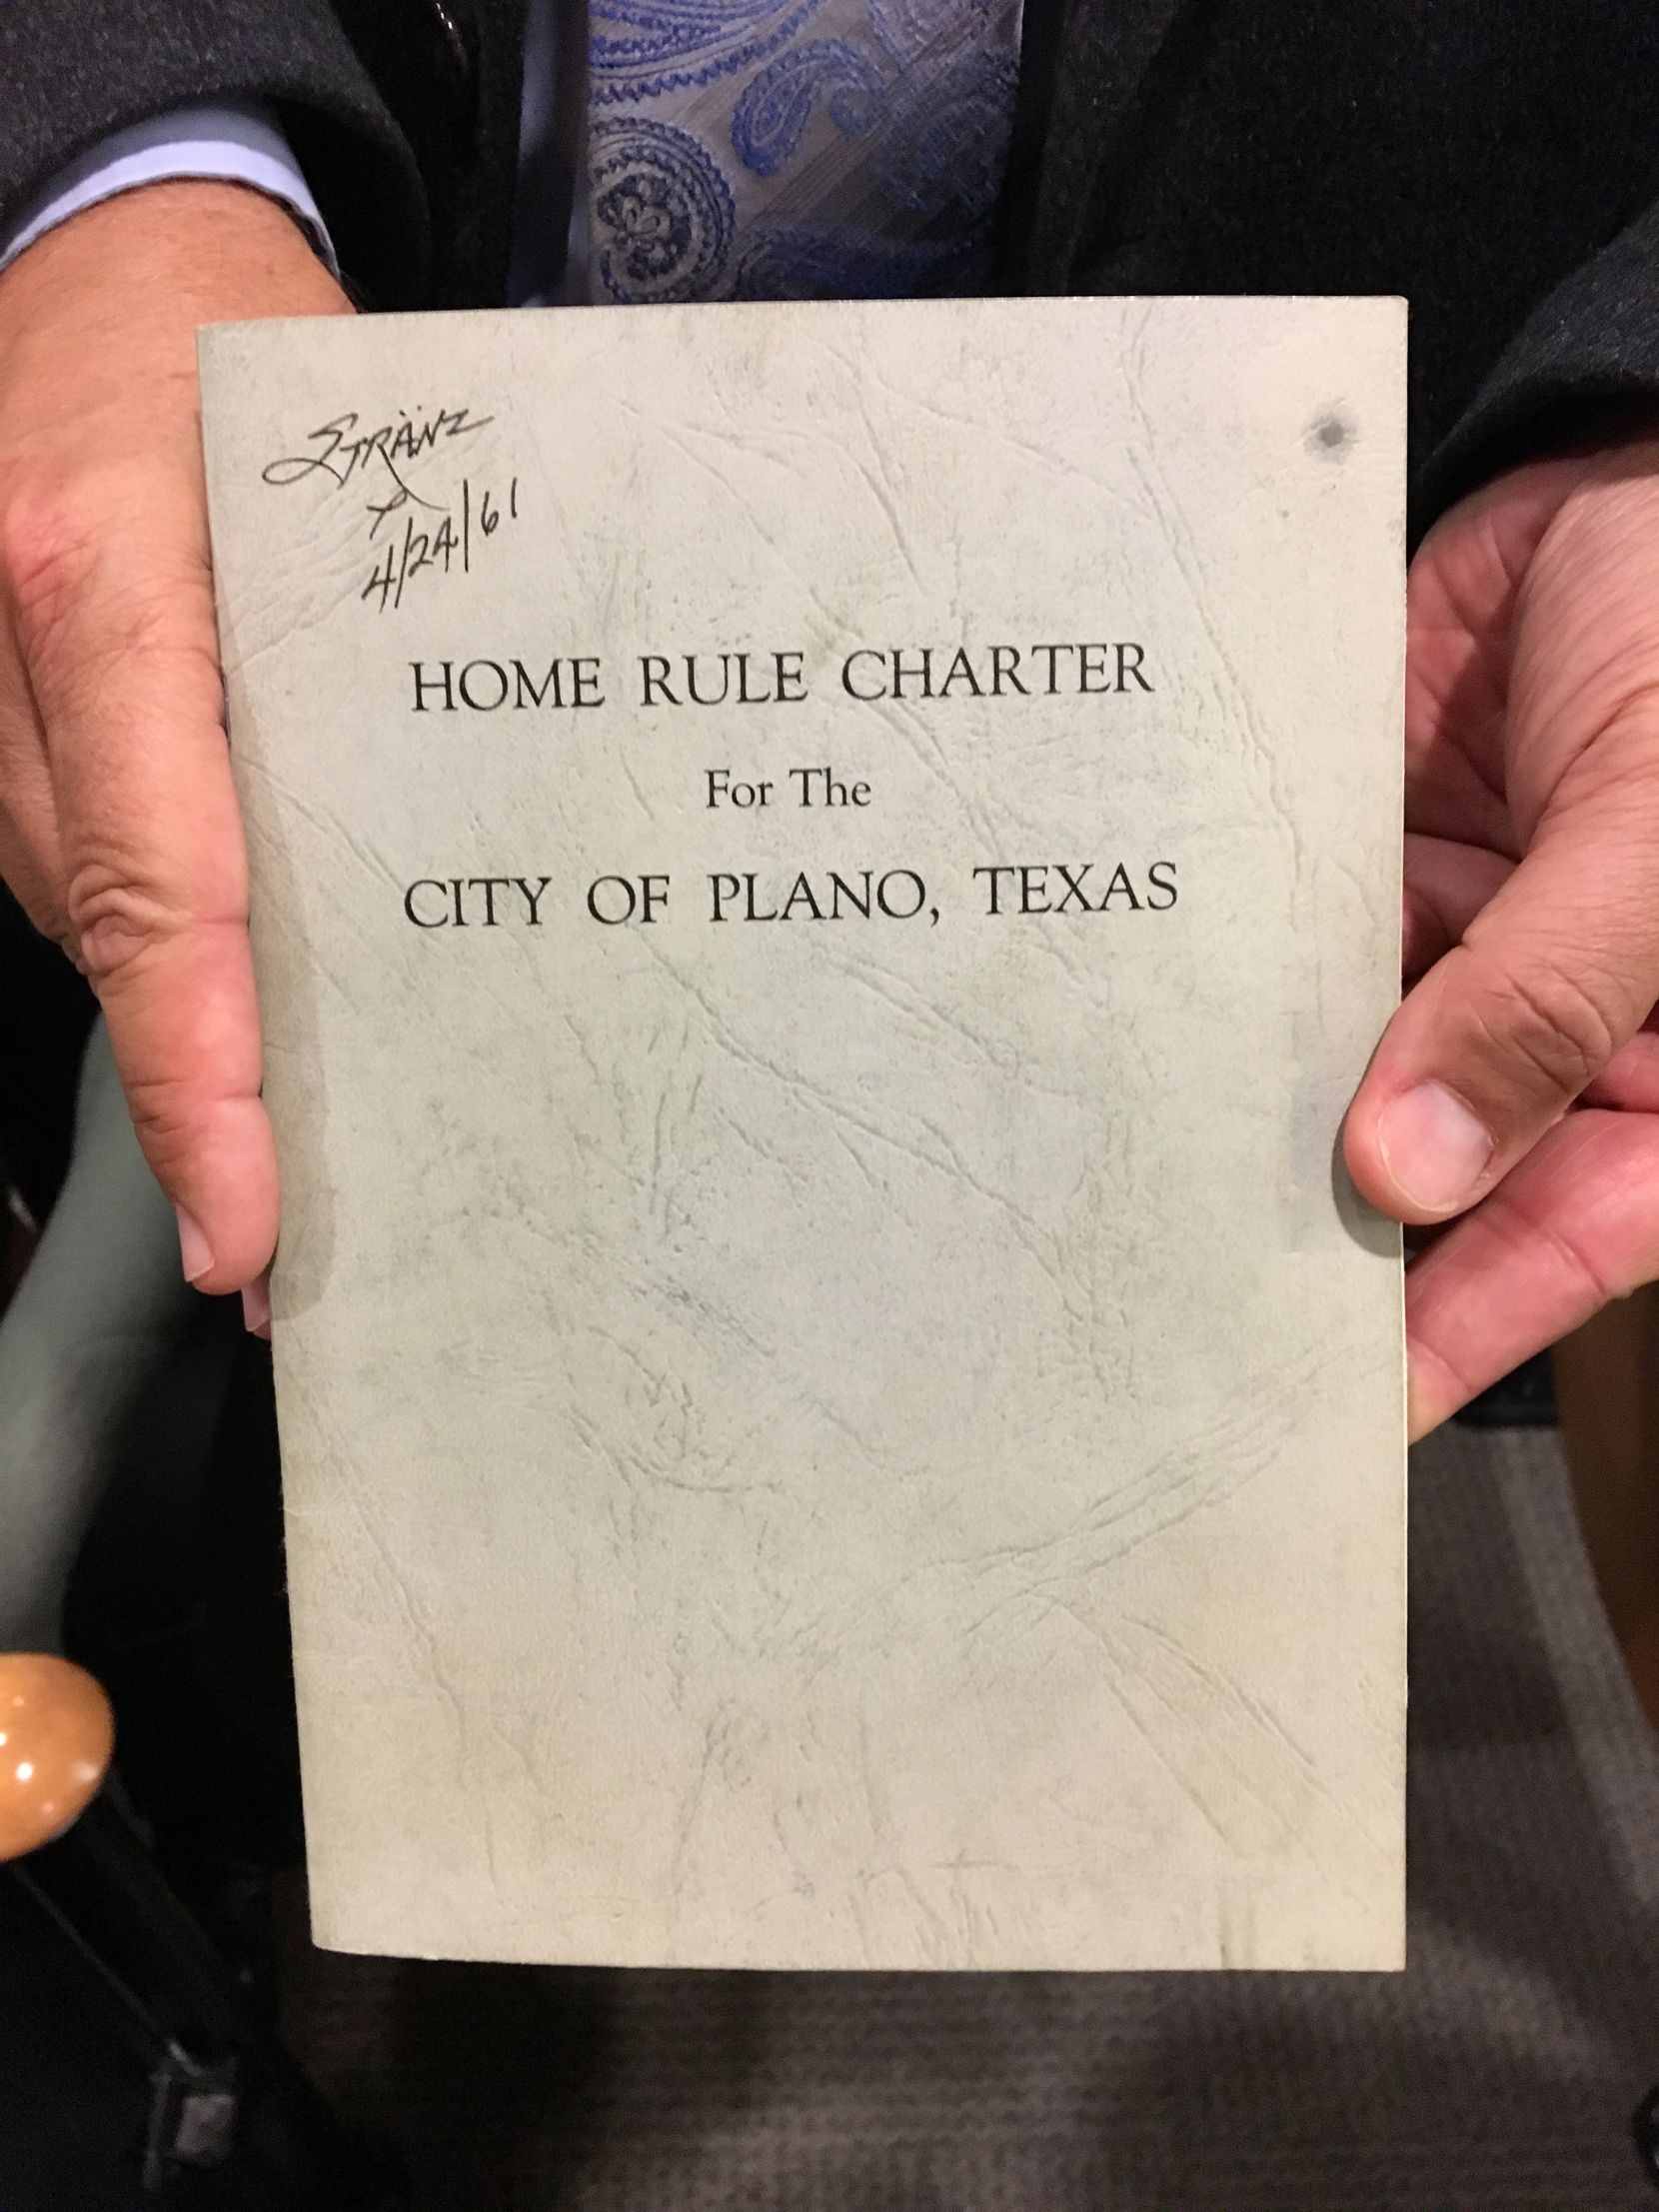 This copy of the 1961 Plano City Charter includes the signature of then Mayor Art Stranz and the date 4/24/1961. It was among the evidence introduced in Tuesday's court hearing.